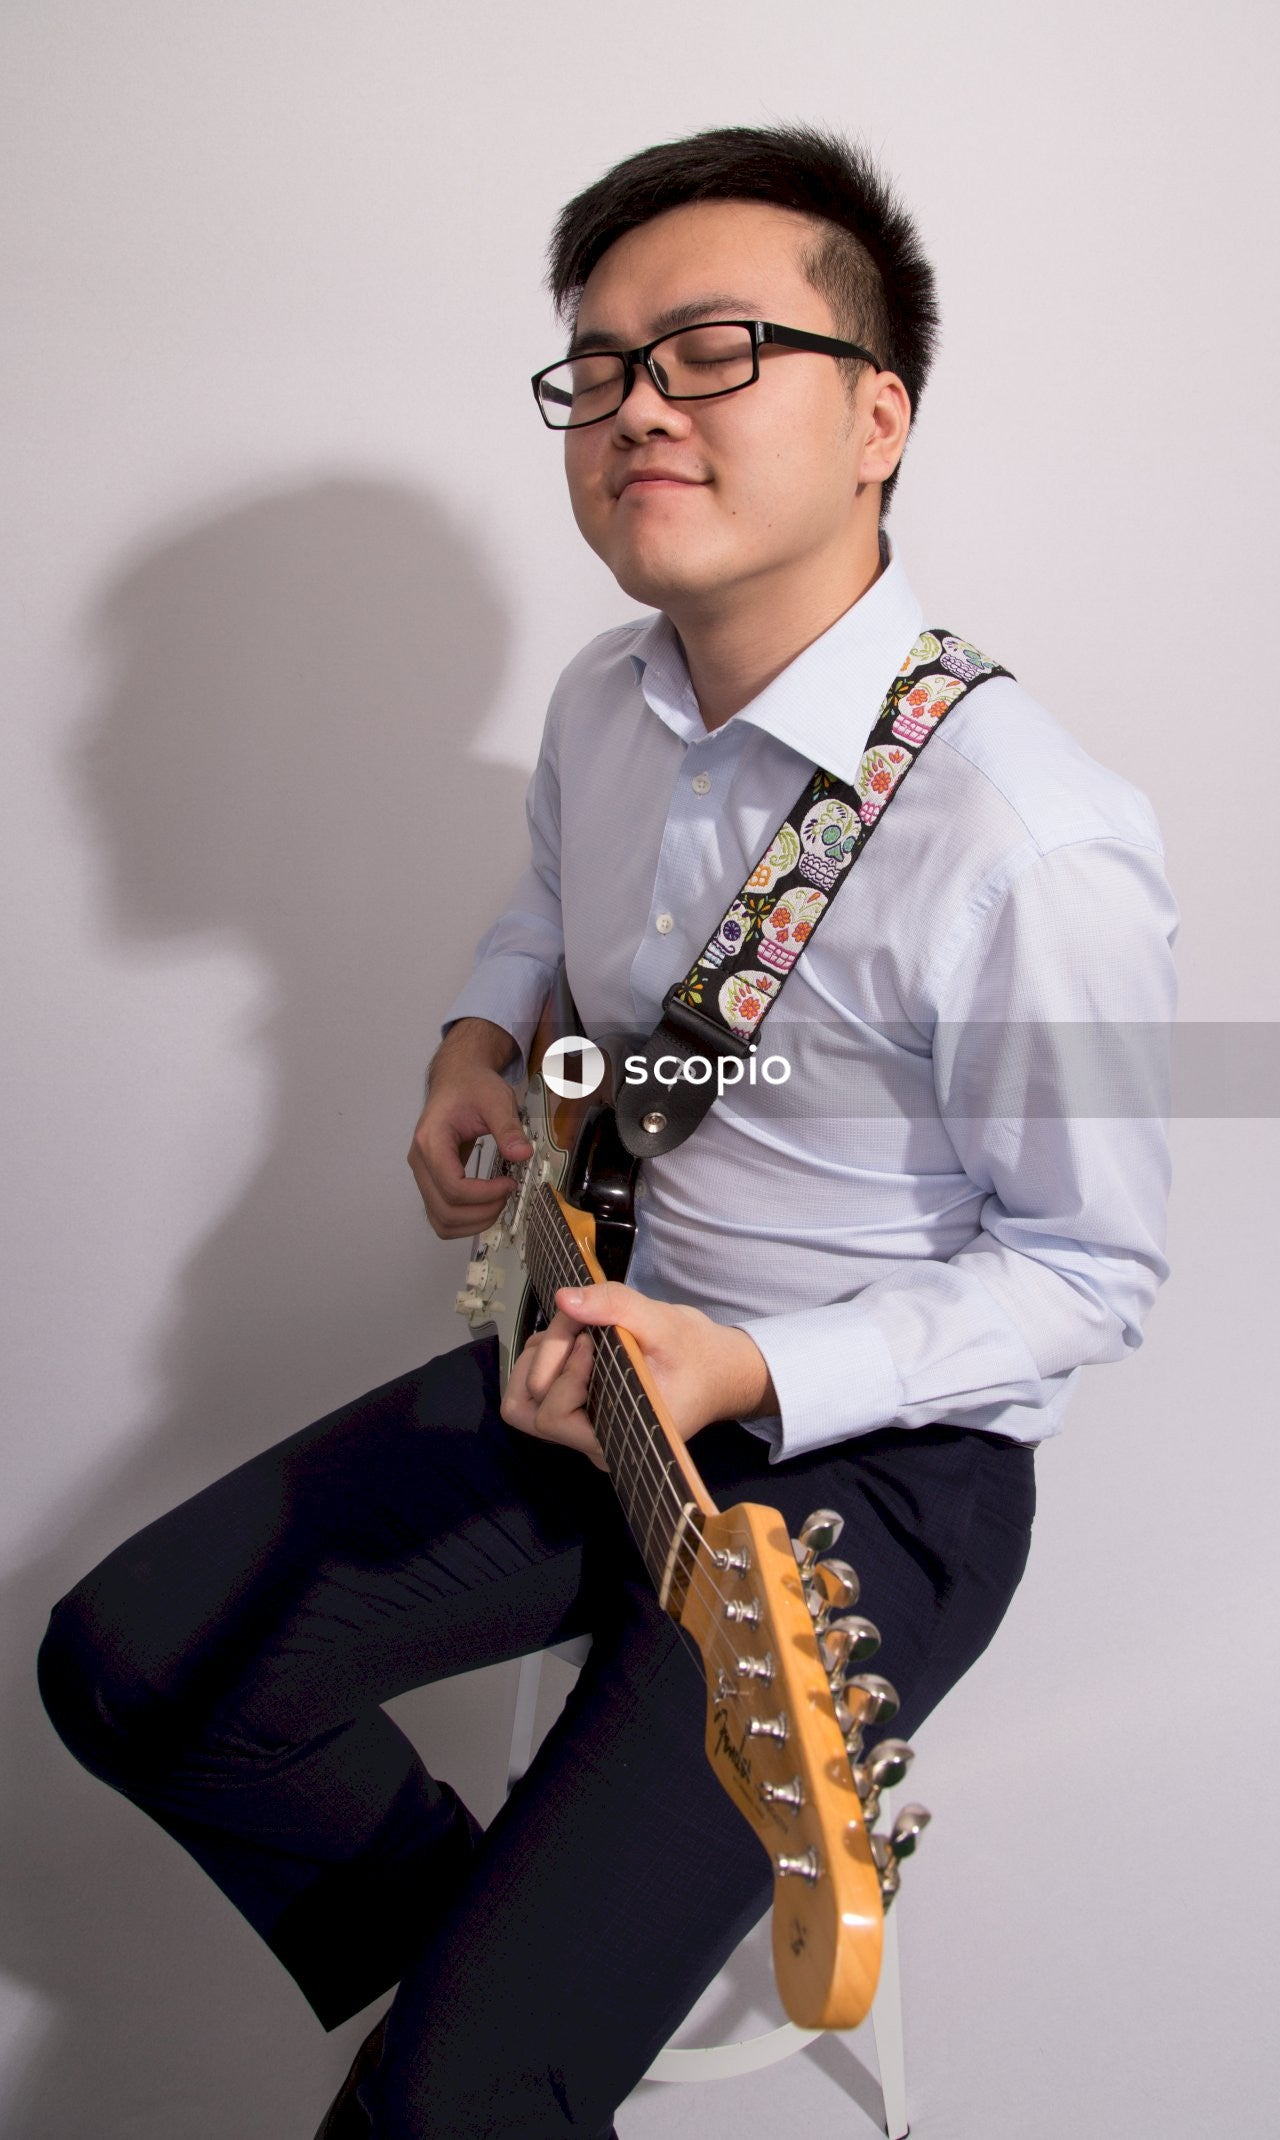 Man in white dress shirt playing brown acoustic guitar